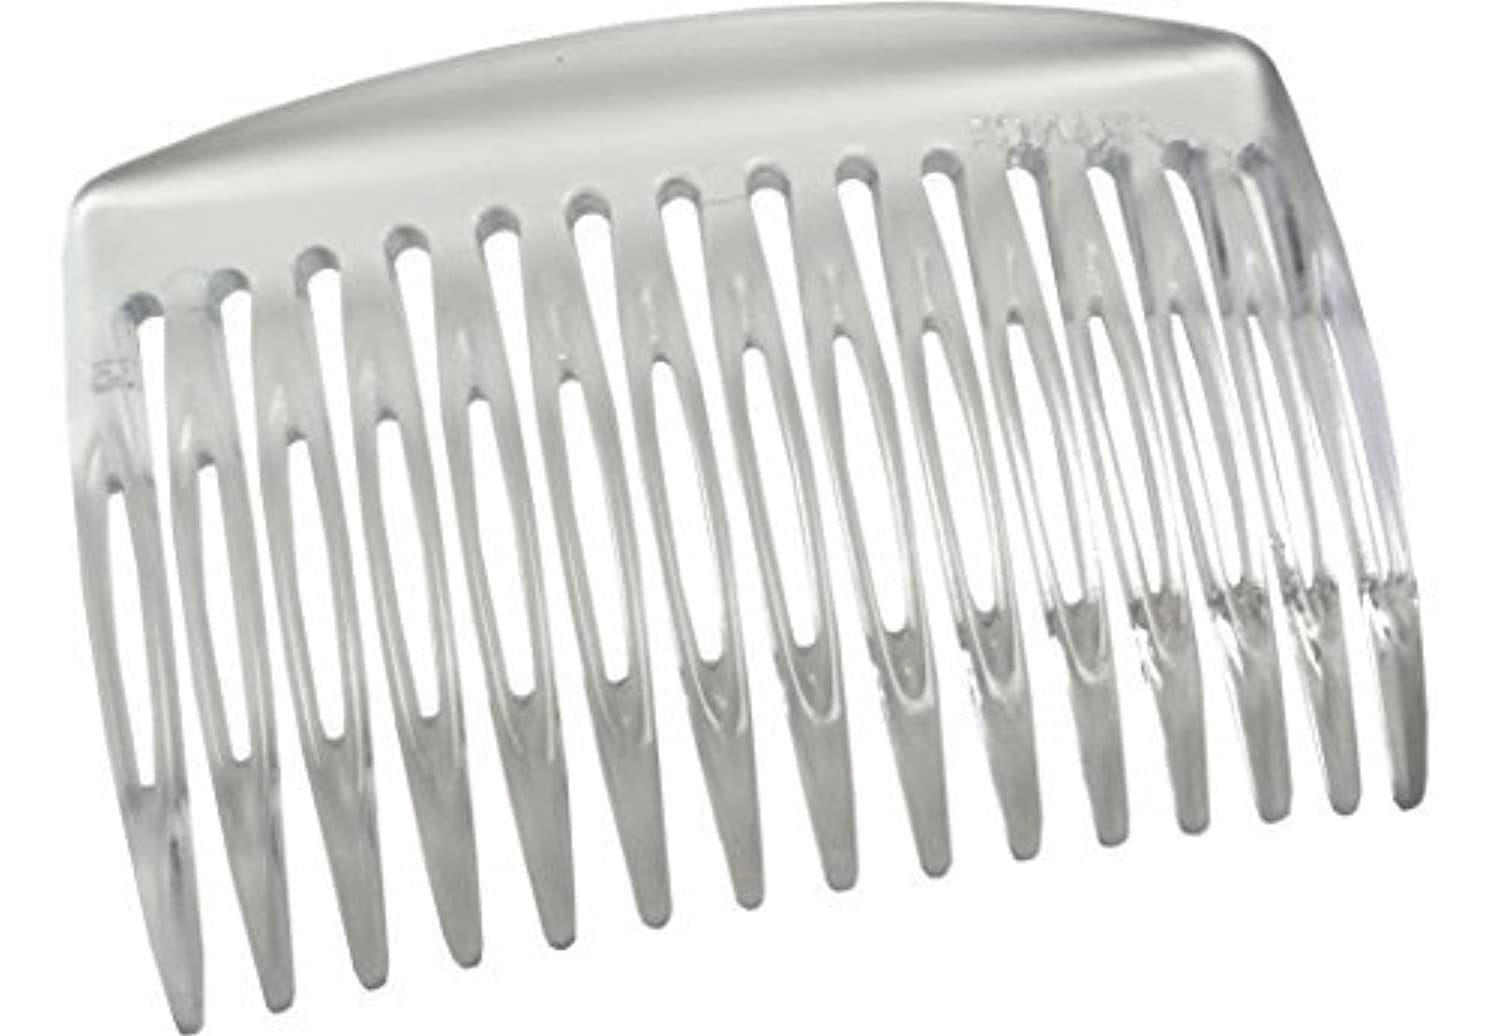 流用するカジュアル王子Parcelona French Nice N Simple Clear 2 Pieces Cellulose Acetate Clear 7 Cm Side Hair Comb Combs [並行輸入品]